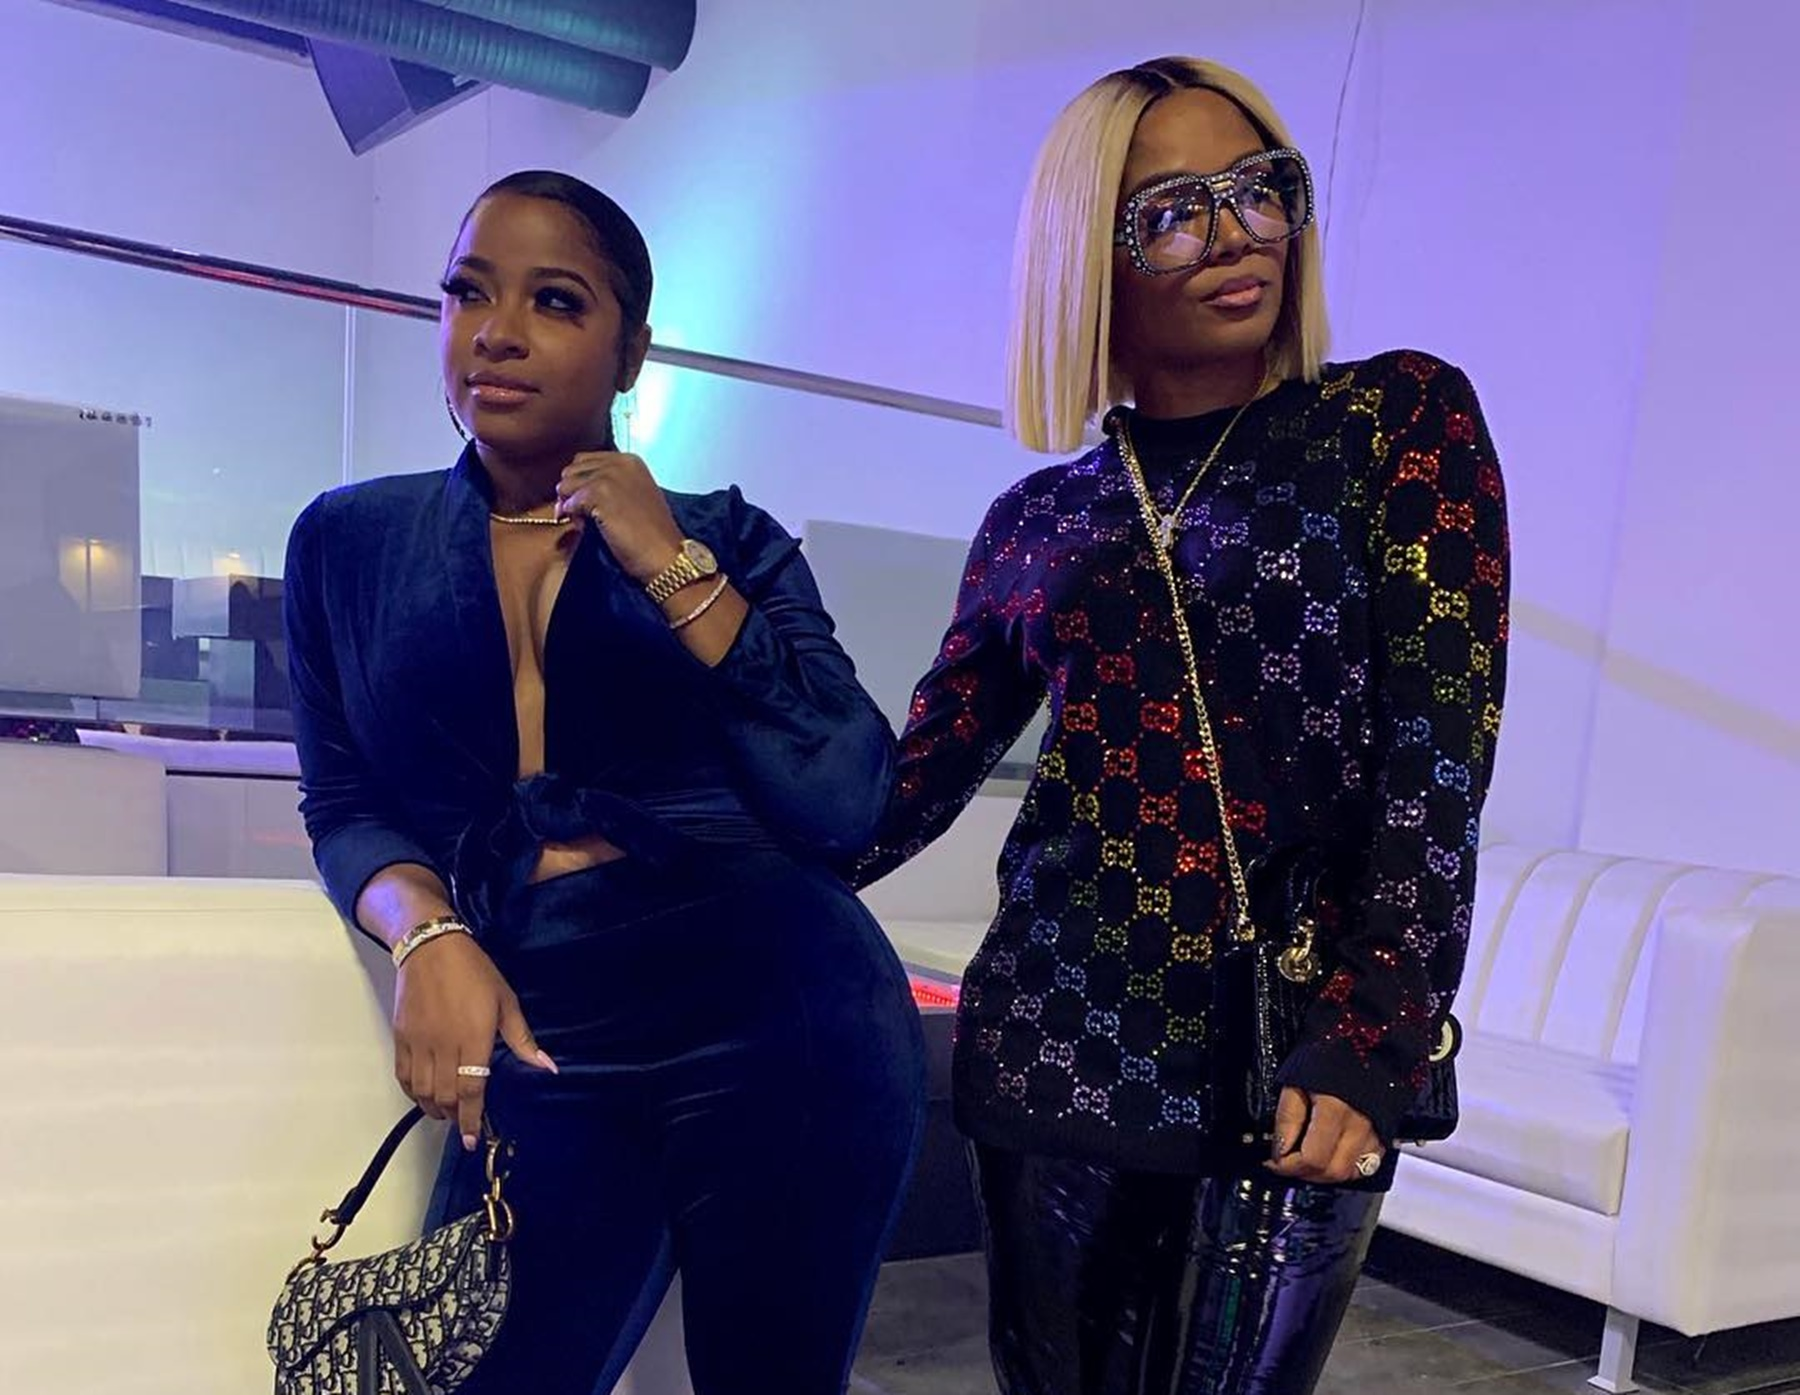 """rasheeda-frost-ends-fashion-fail-streak-in-new-fire-and-ice-photo-with-toya-wright-kirk-will-approve"""